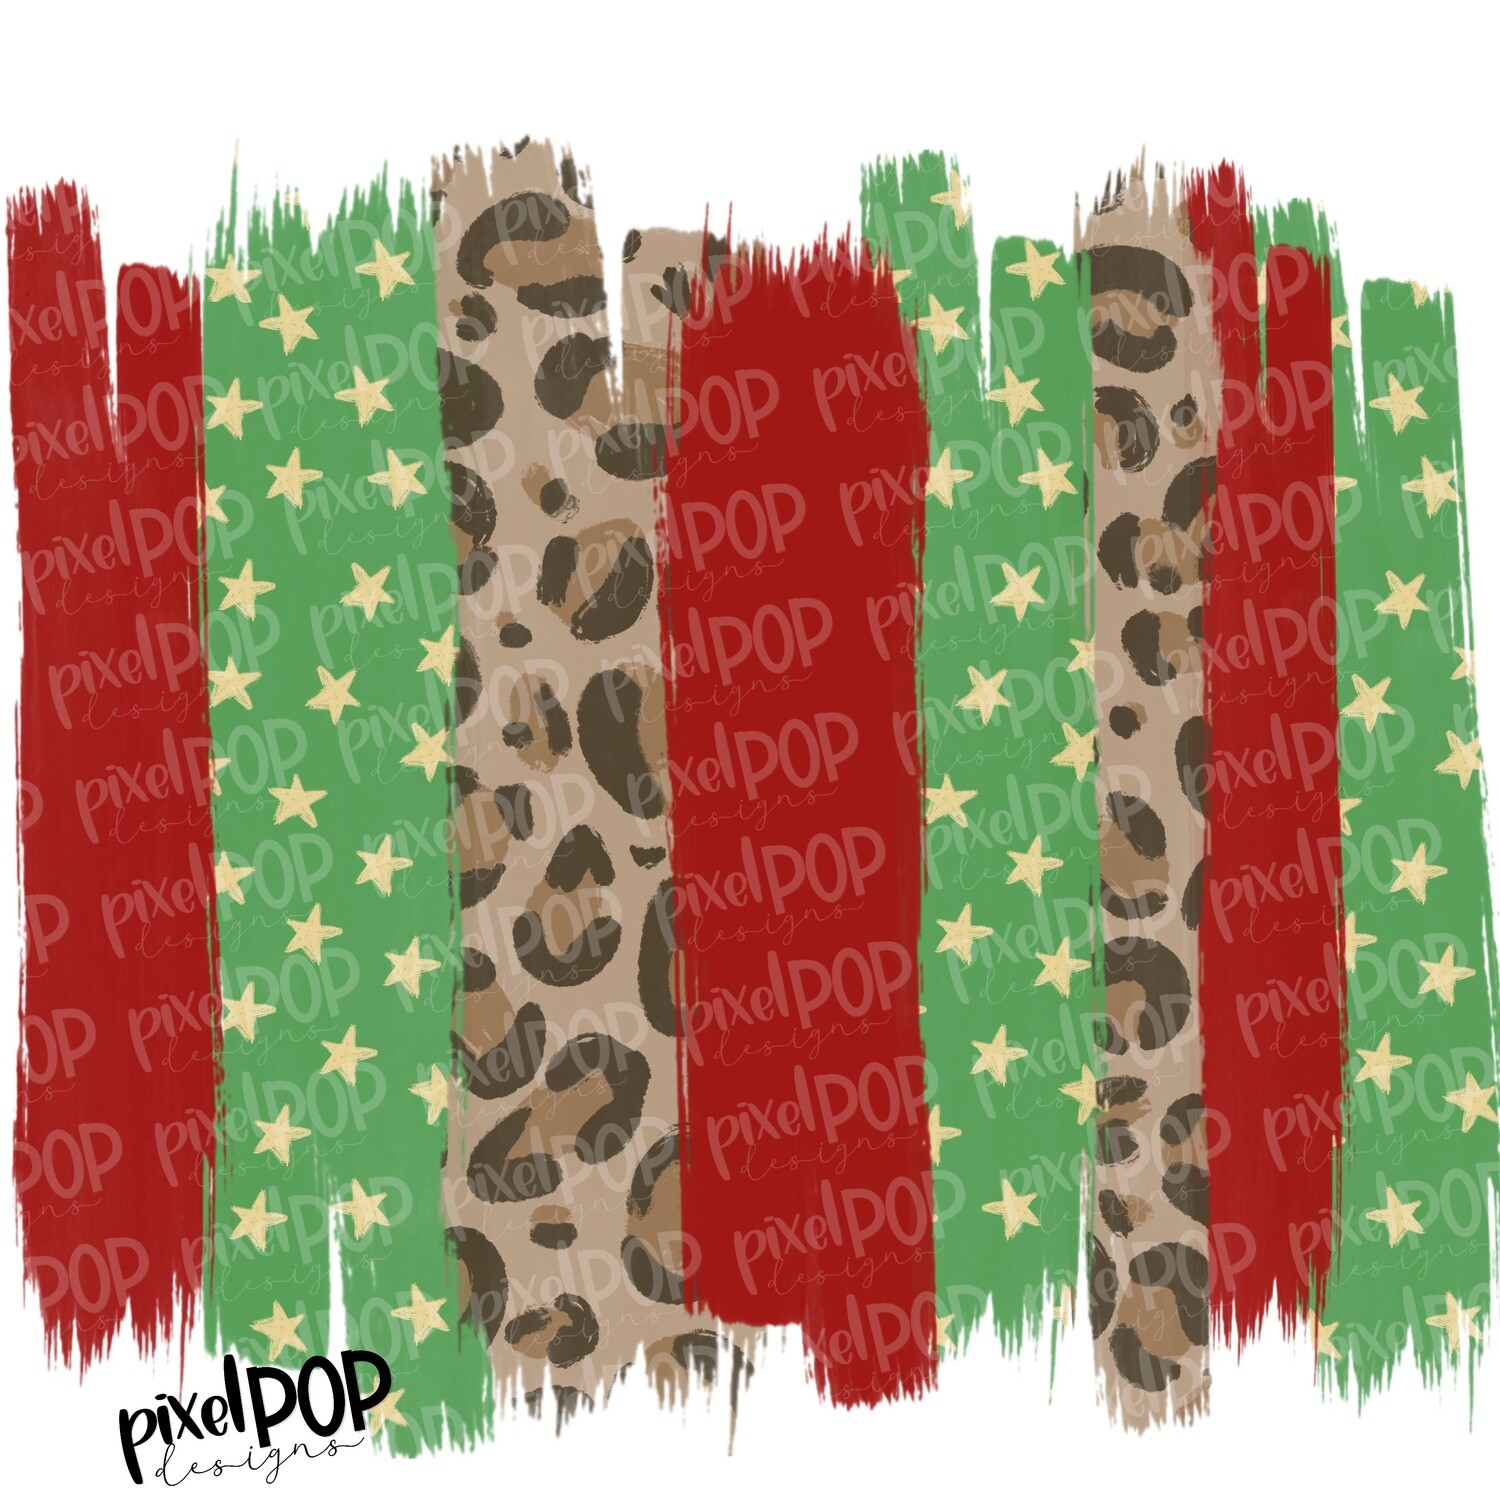 Christmas Leopard Red Green Brush Strokes Background PNG   Holiday Background   Digital Art   Background   Christmas Art   Leopard Digital